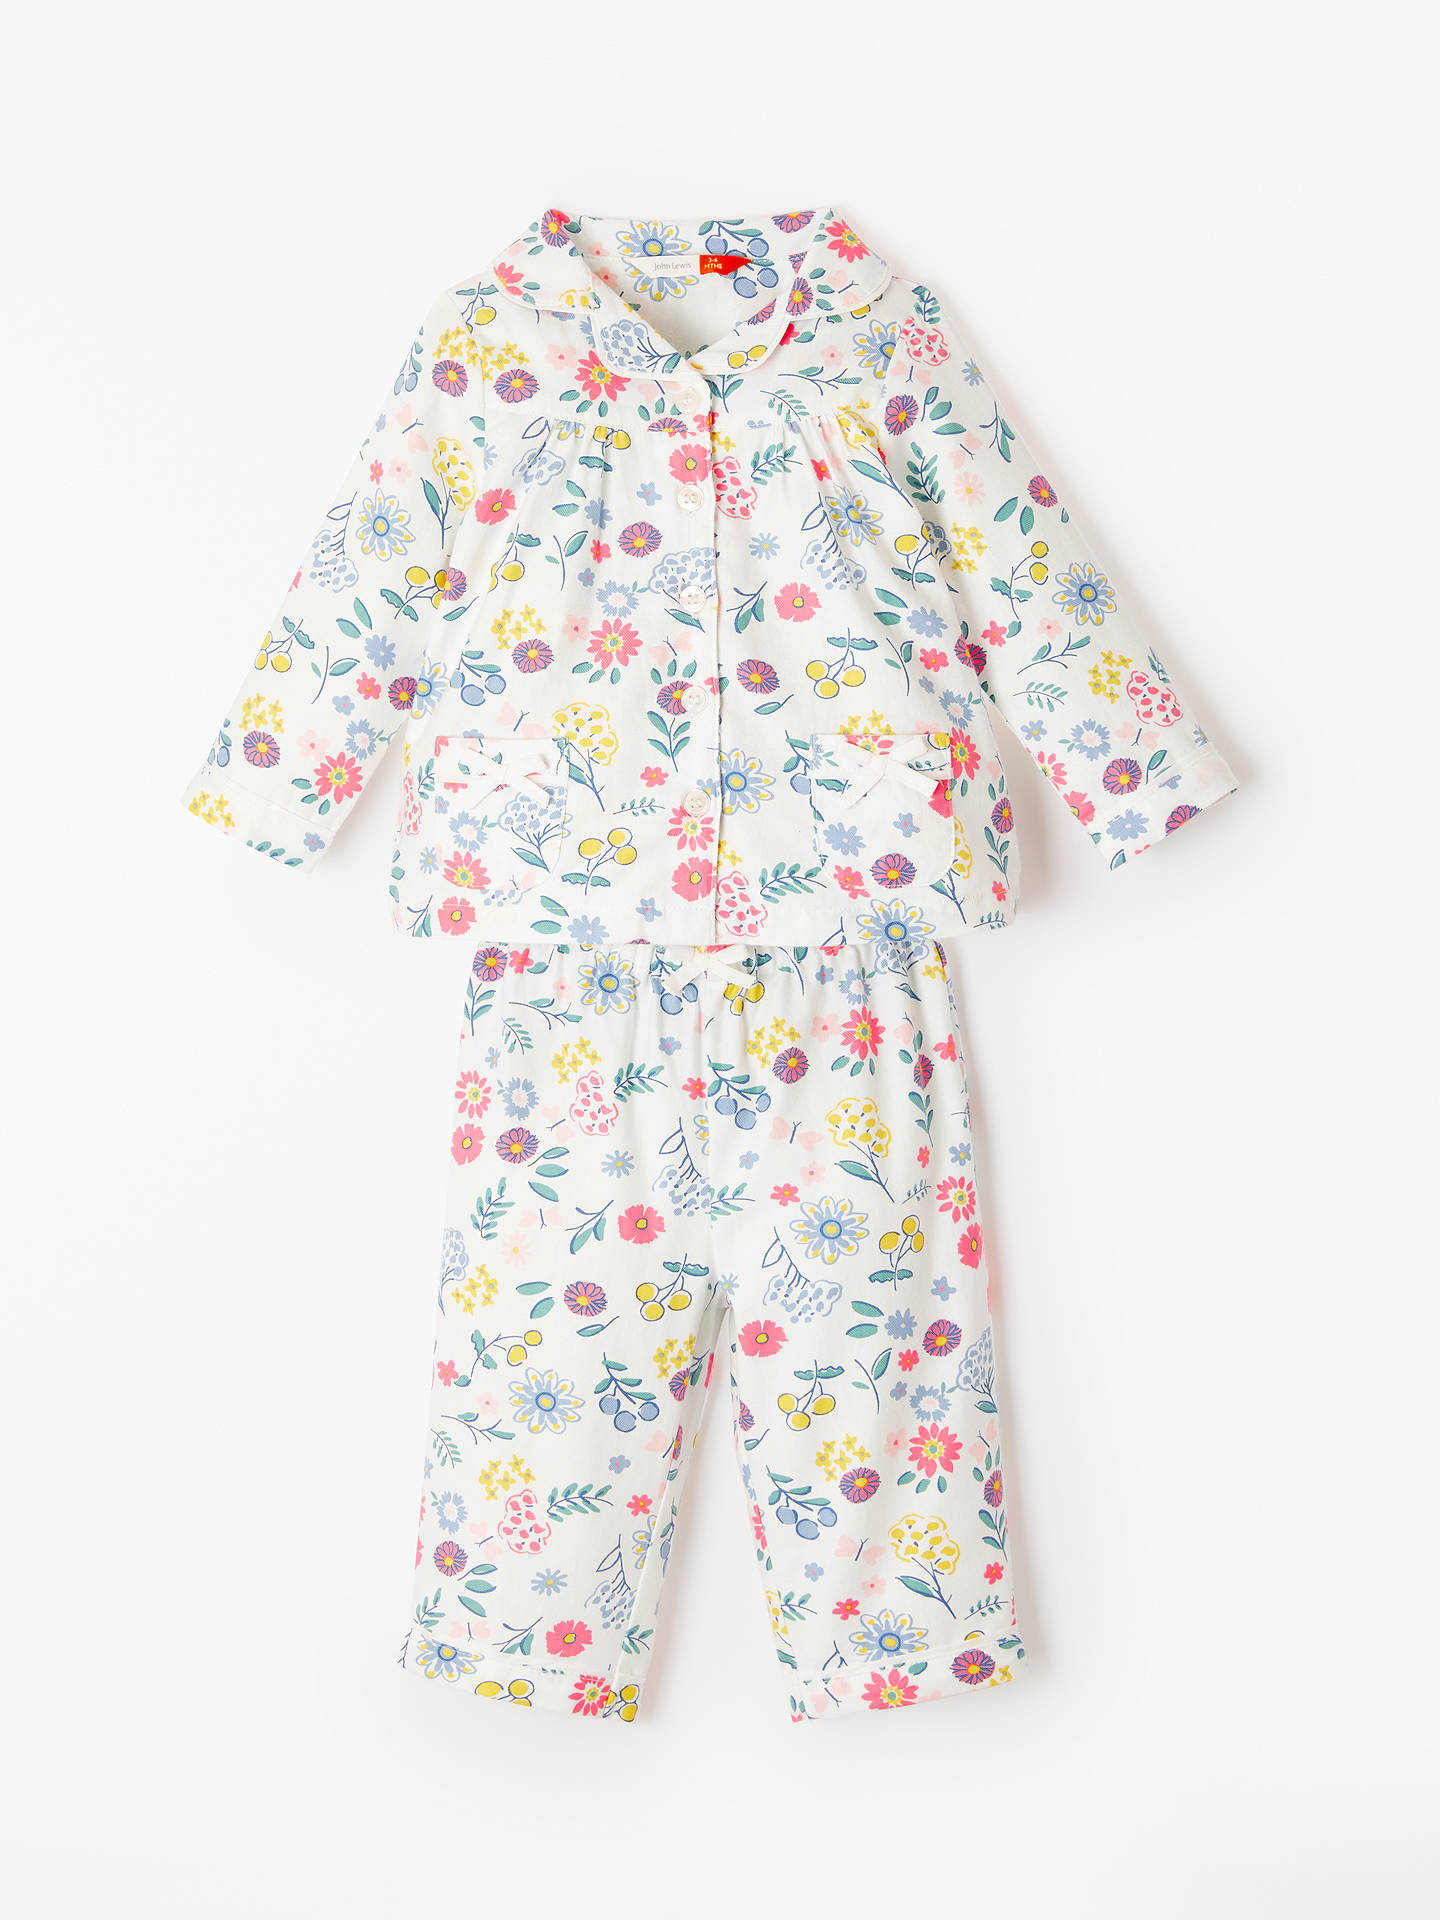 BuyJohn Lewis & Partners Floral Pyjama Top and Bottoms Set, Multi, 3-6 months Online at johnlewis.com